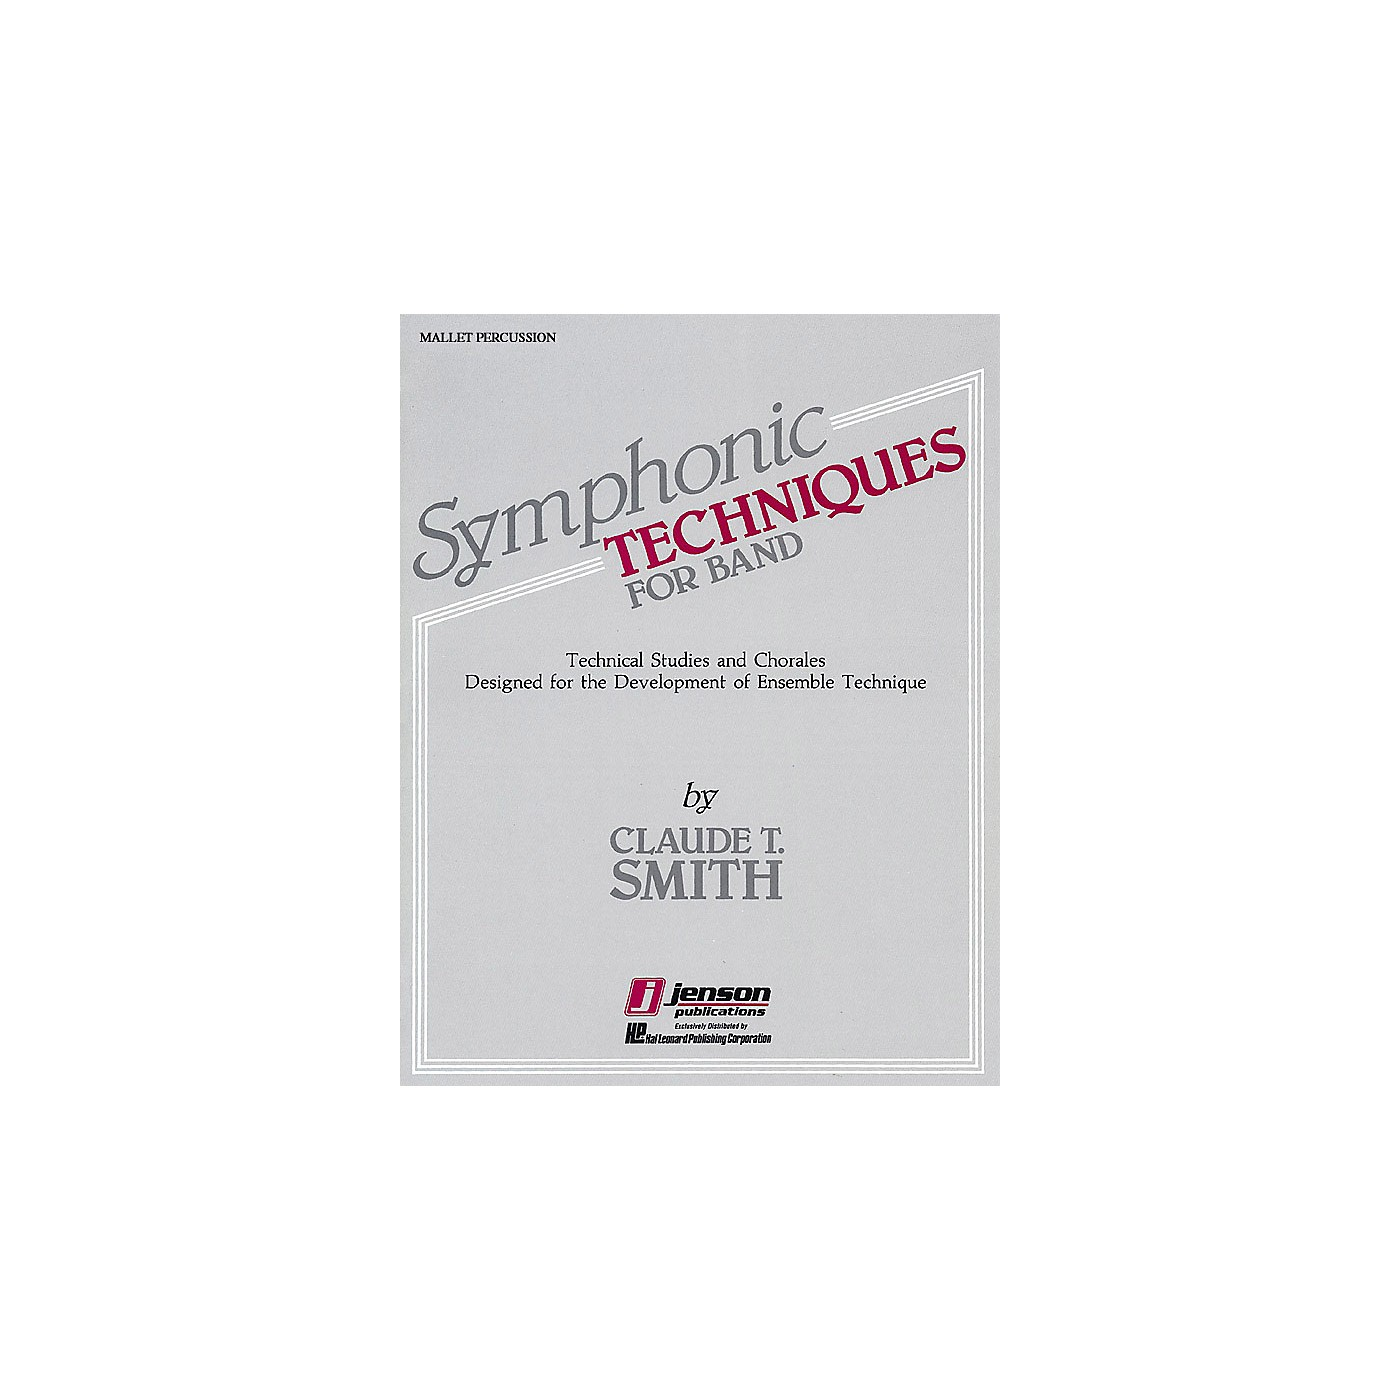 Hal Leonard Symphonic Techniques for Band (Mallet Percussion) Concert Band Level 2-3 Composed by Claude T. Smith thumbnail